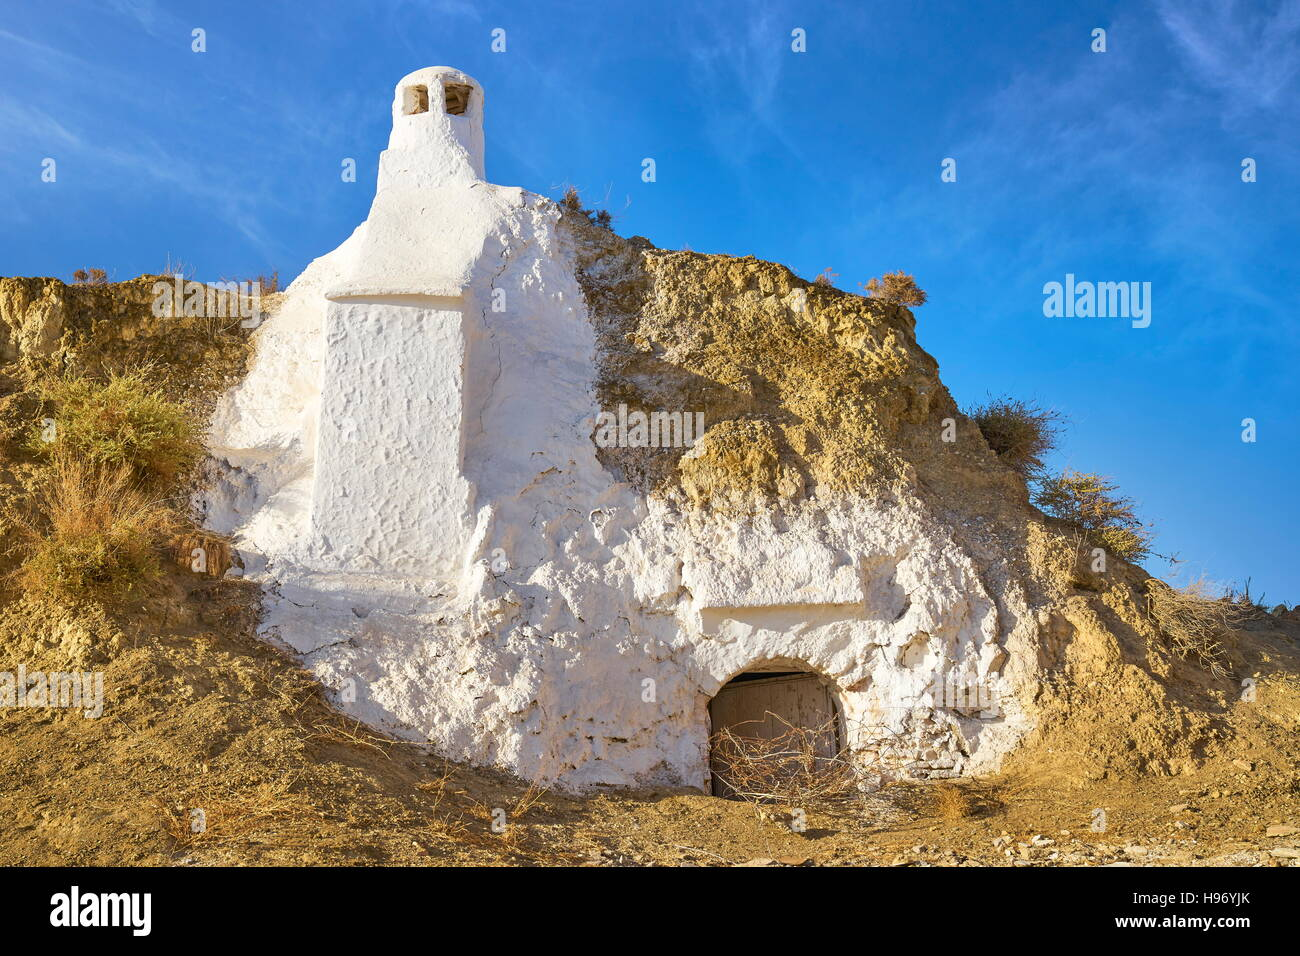 Troglodyte cave dwellings, undergroung houses,Guadix, Andalucia, Spain - Stock Image